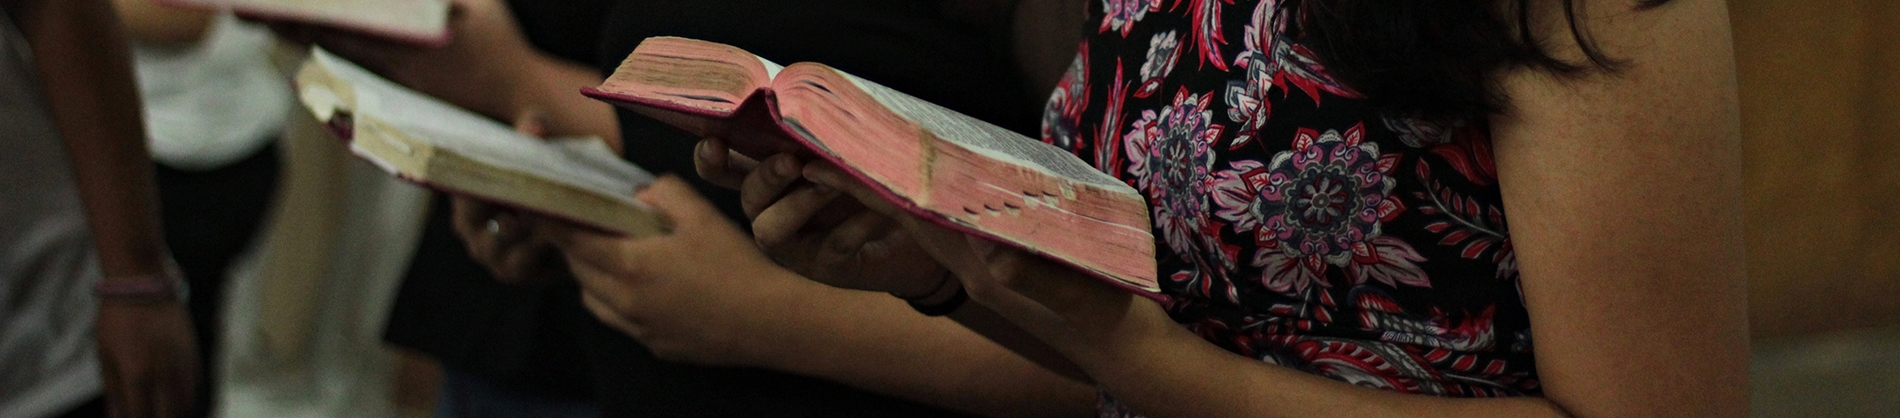 People in church holding bibles open